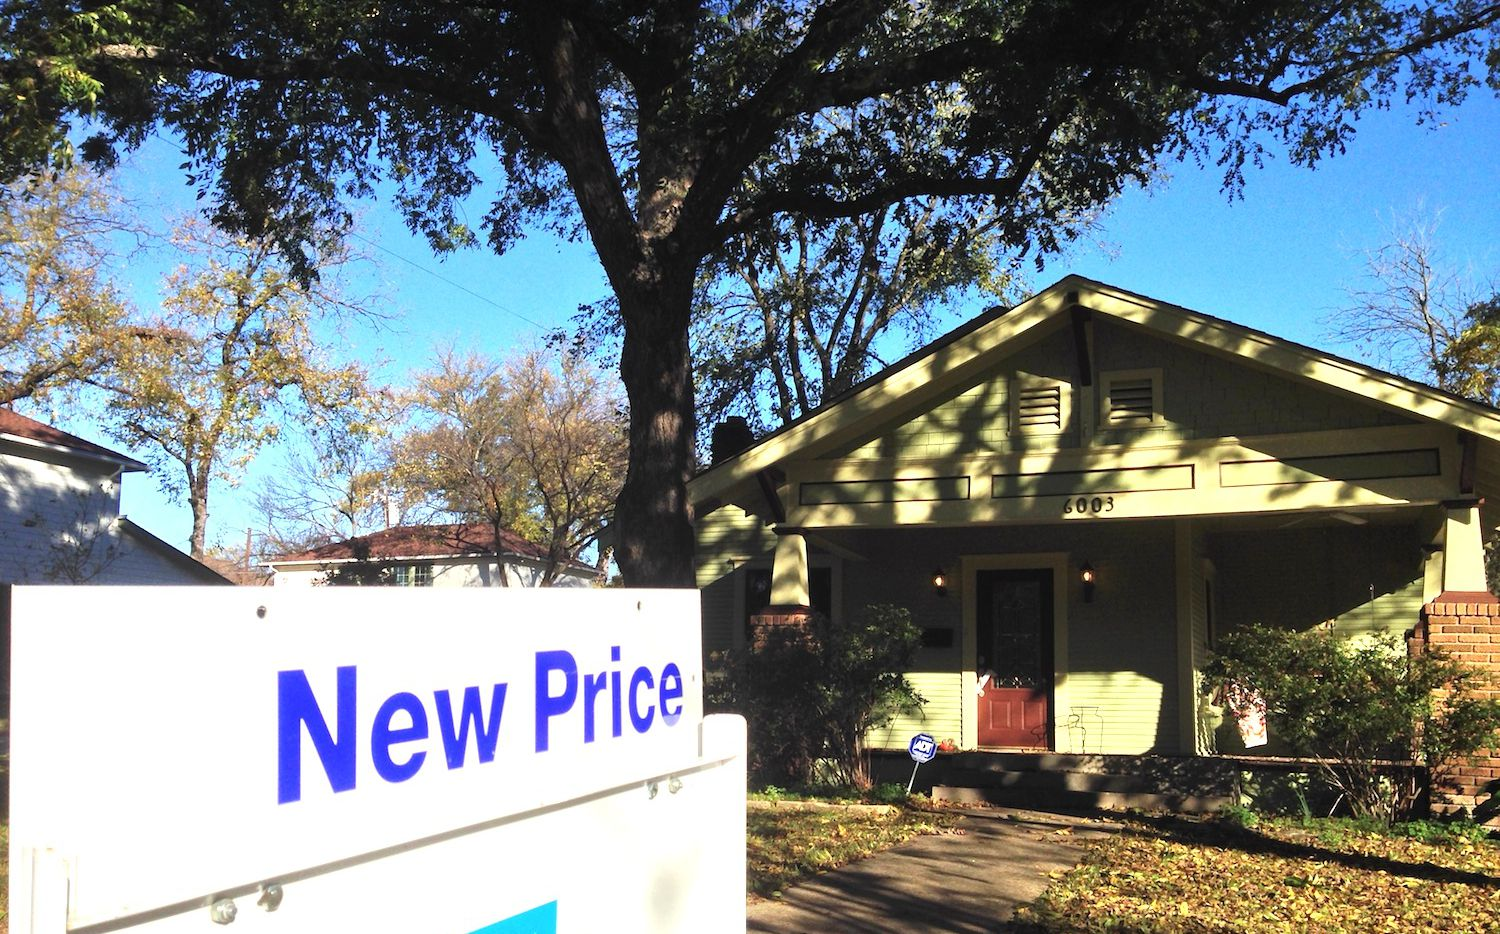 D-FW home prices are 20% to 24% overheated, Fitch Ratings warns.